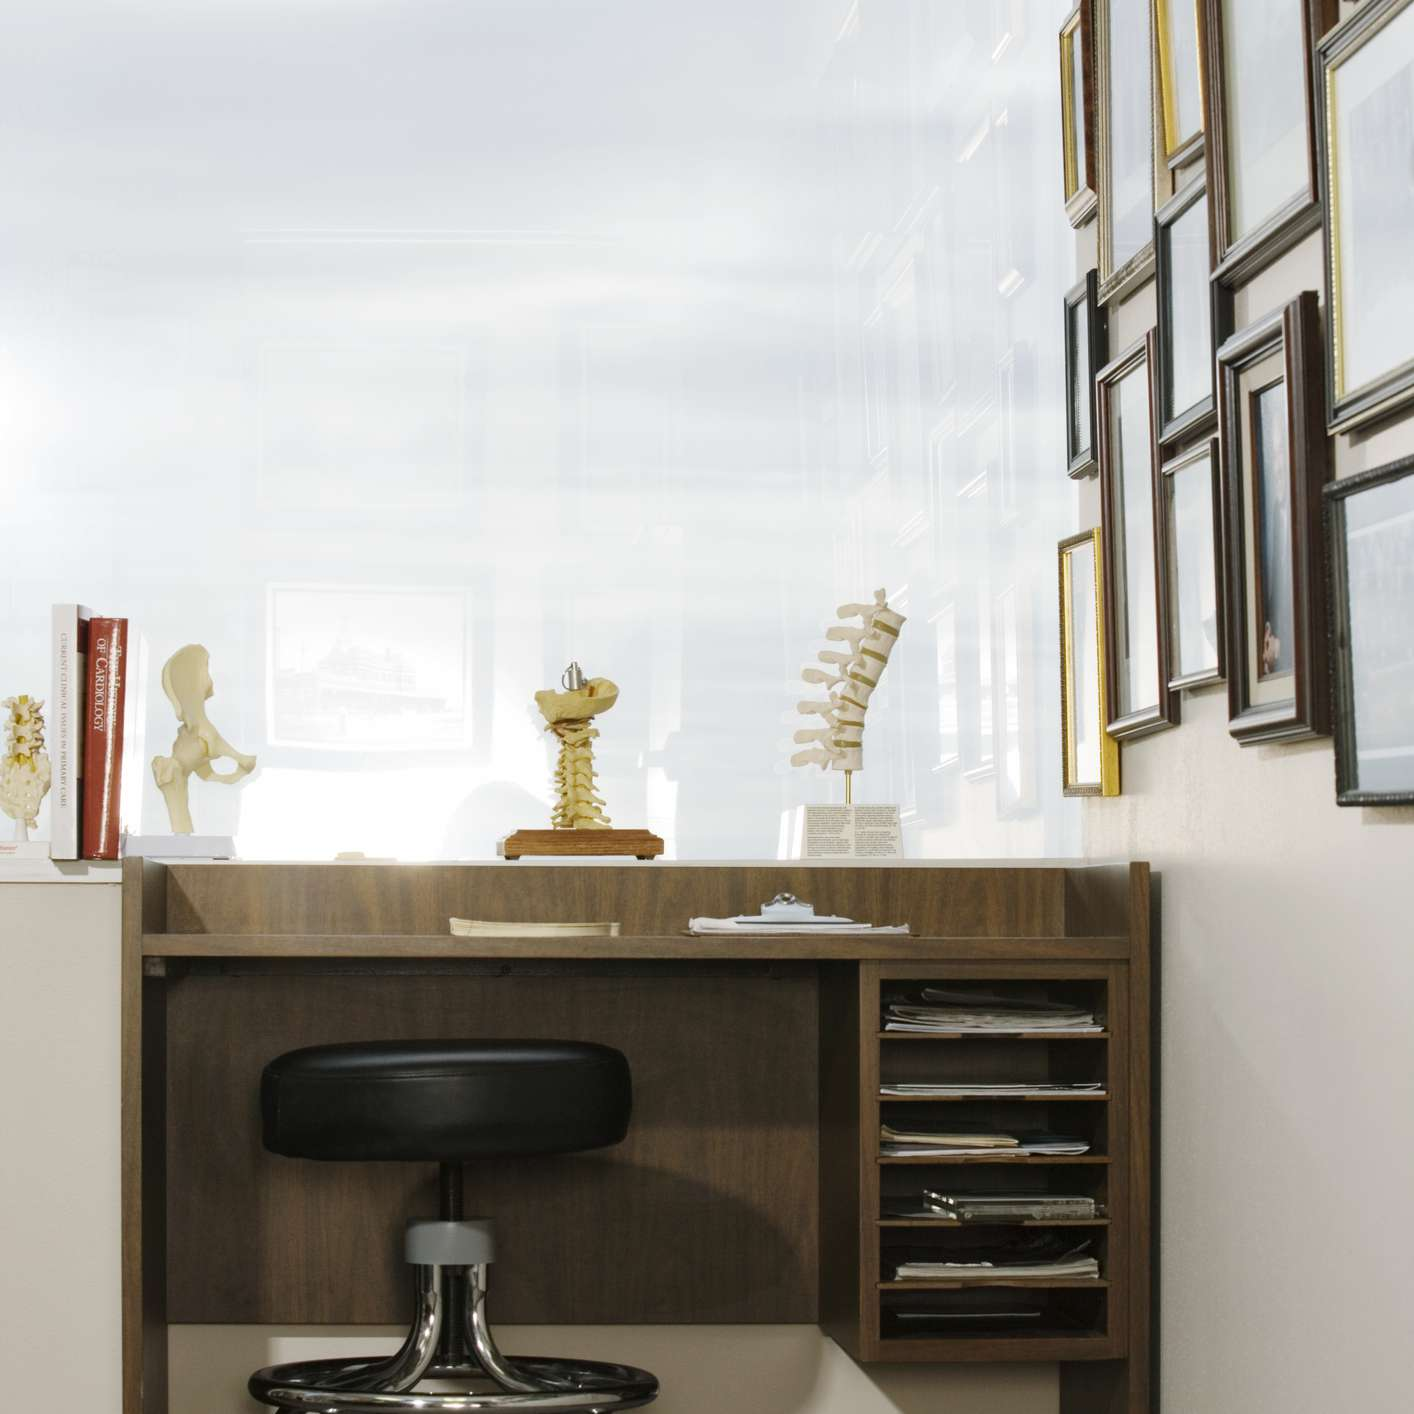 Doctor's desk by window, diplomas on wall